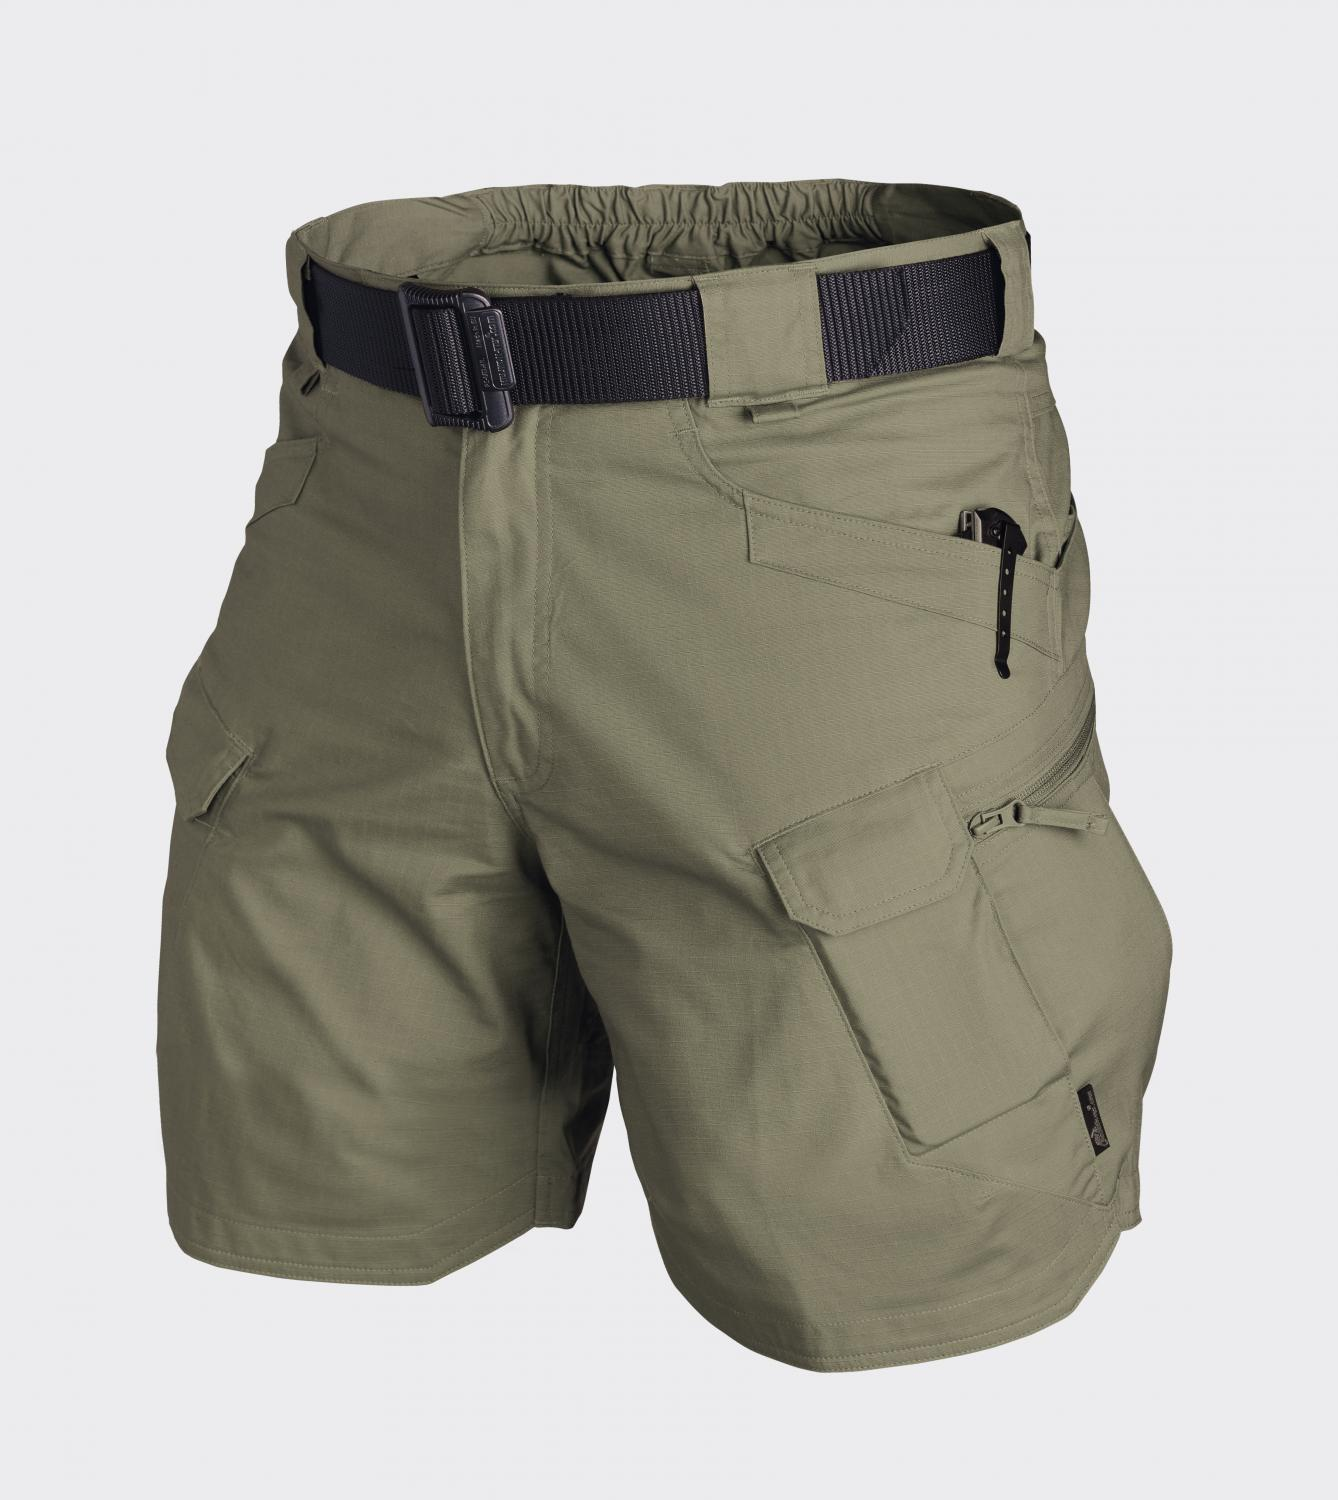 "URBAN TACTICAL SHORTS® 8.5"" - PolyCotton Ripstop Adaptive Green"